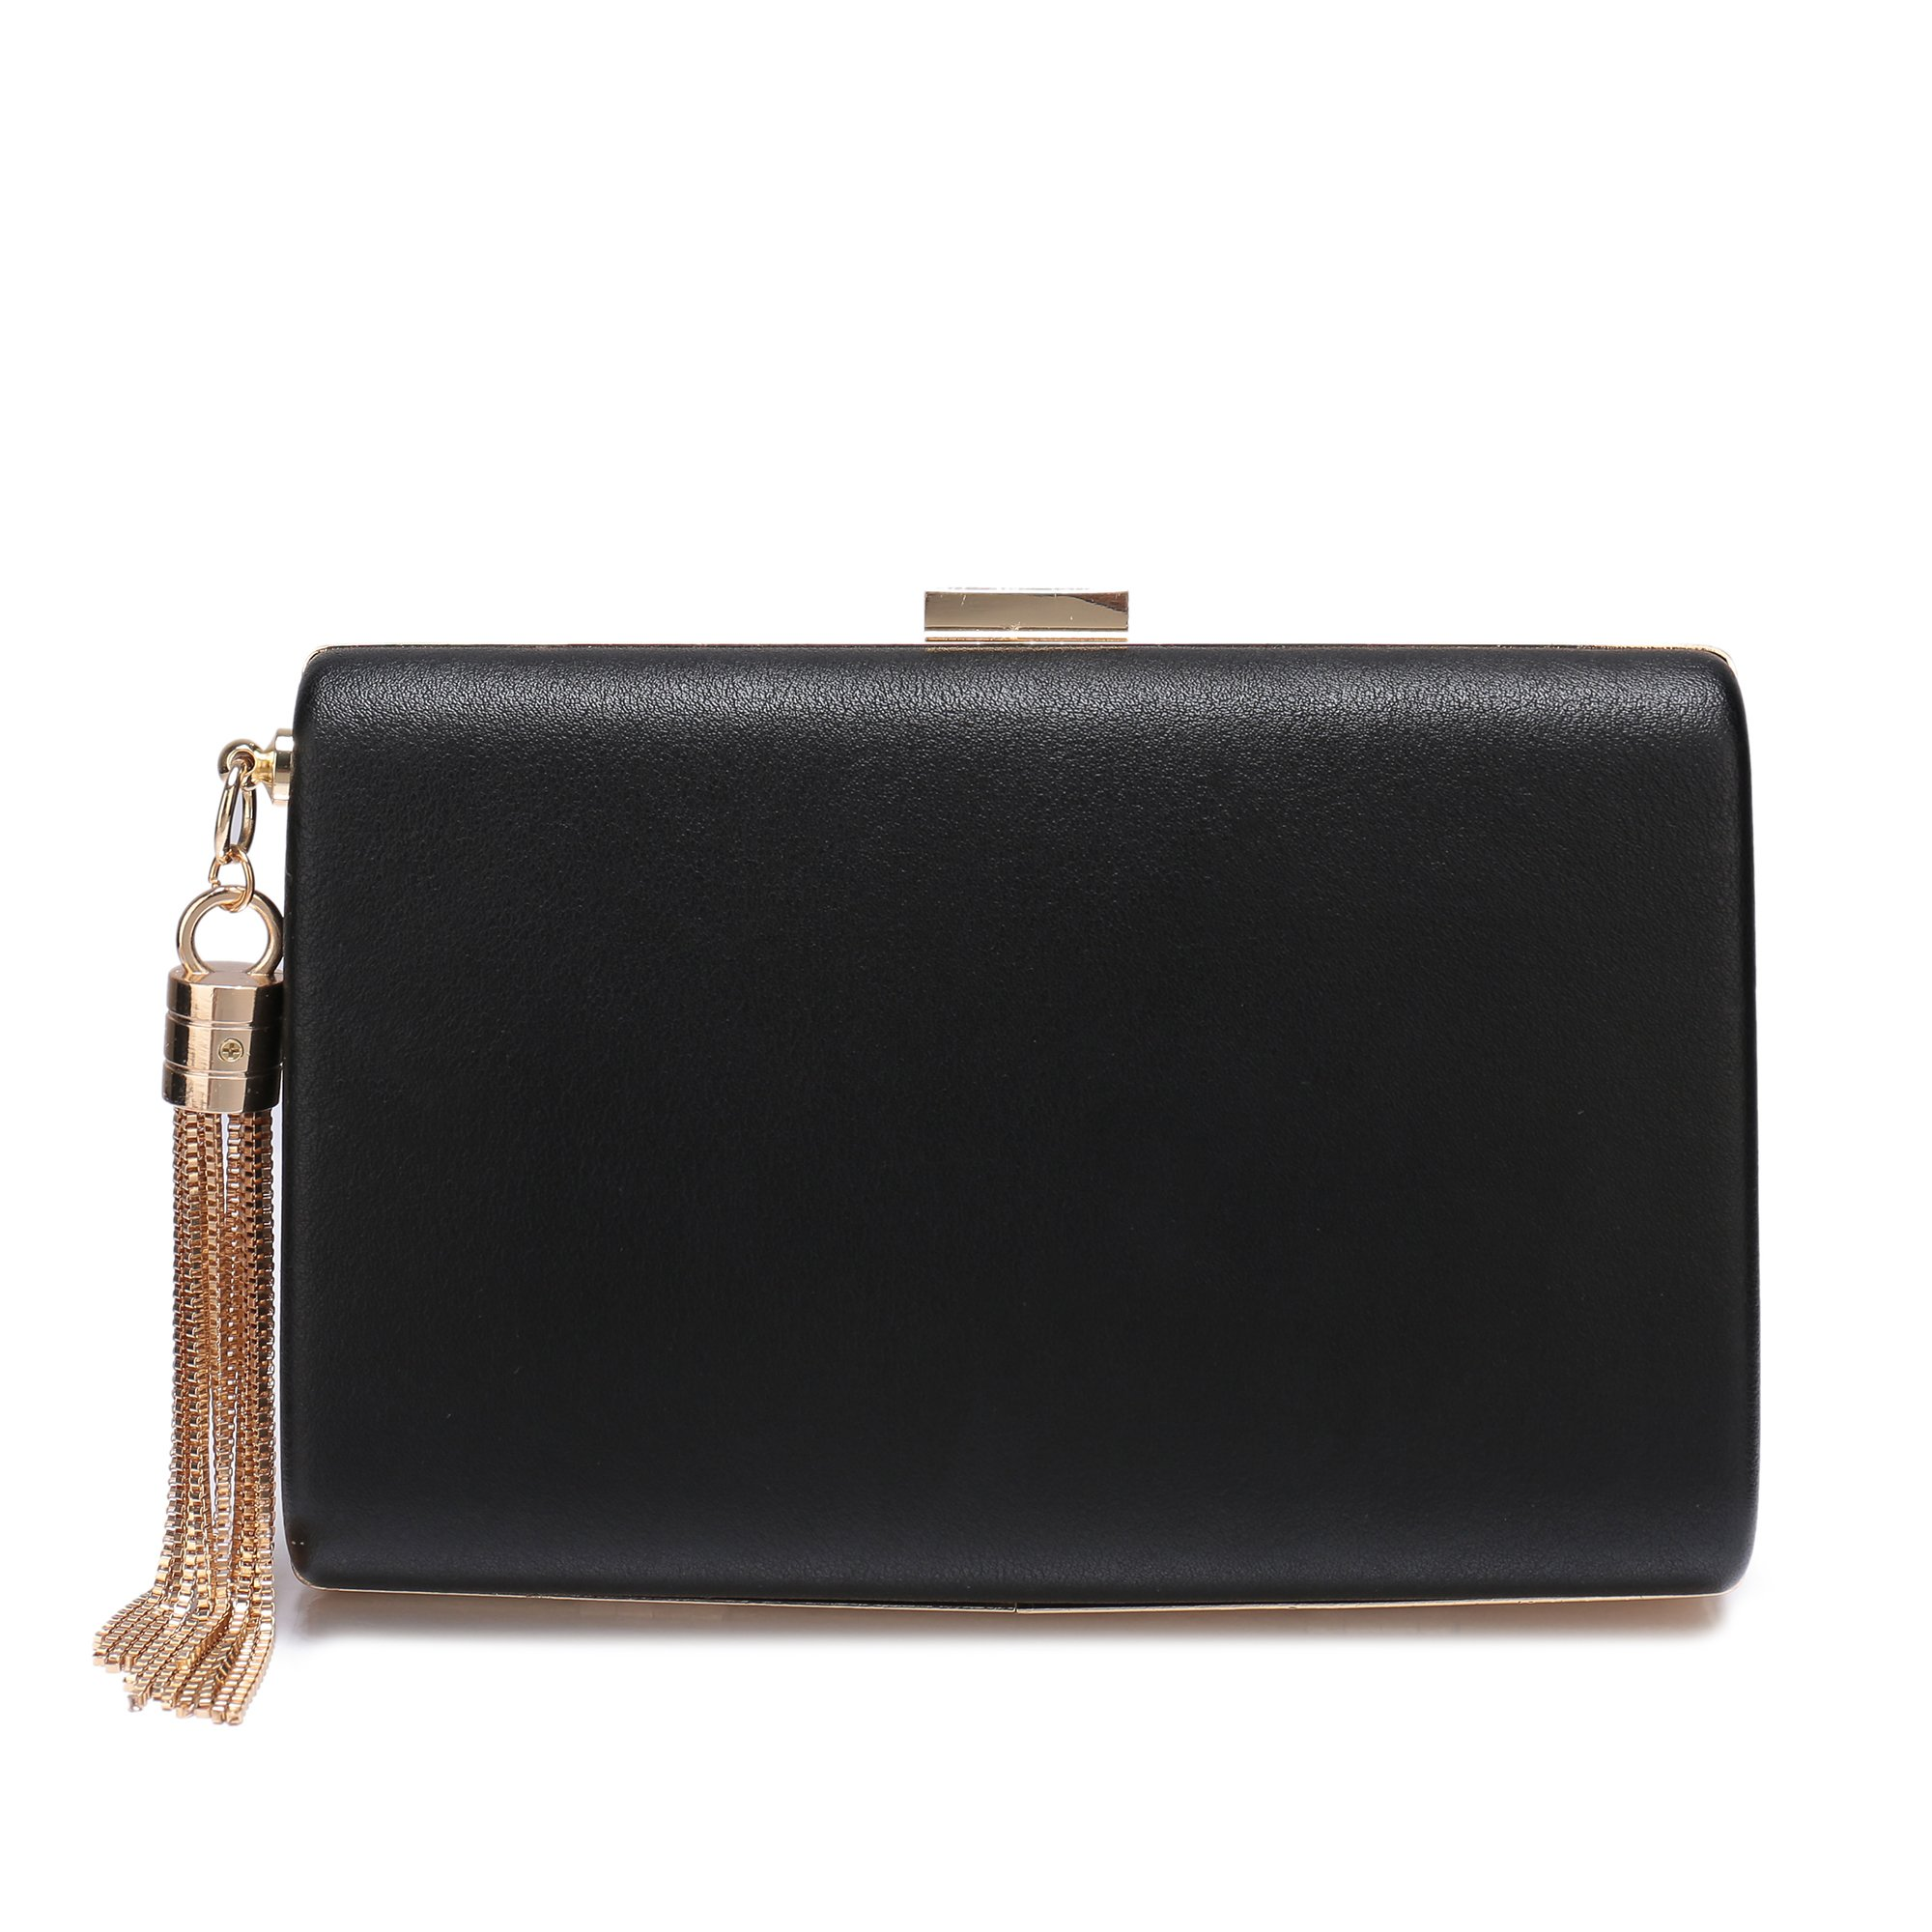 Leather Evening Clutch Handbag Clutch Purse Prom For Cocktail Wedding Women Black by Minicastle